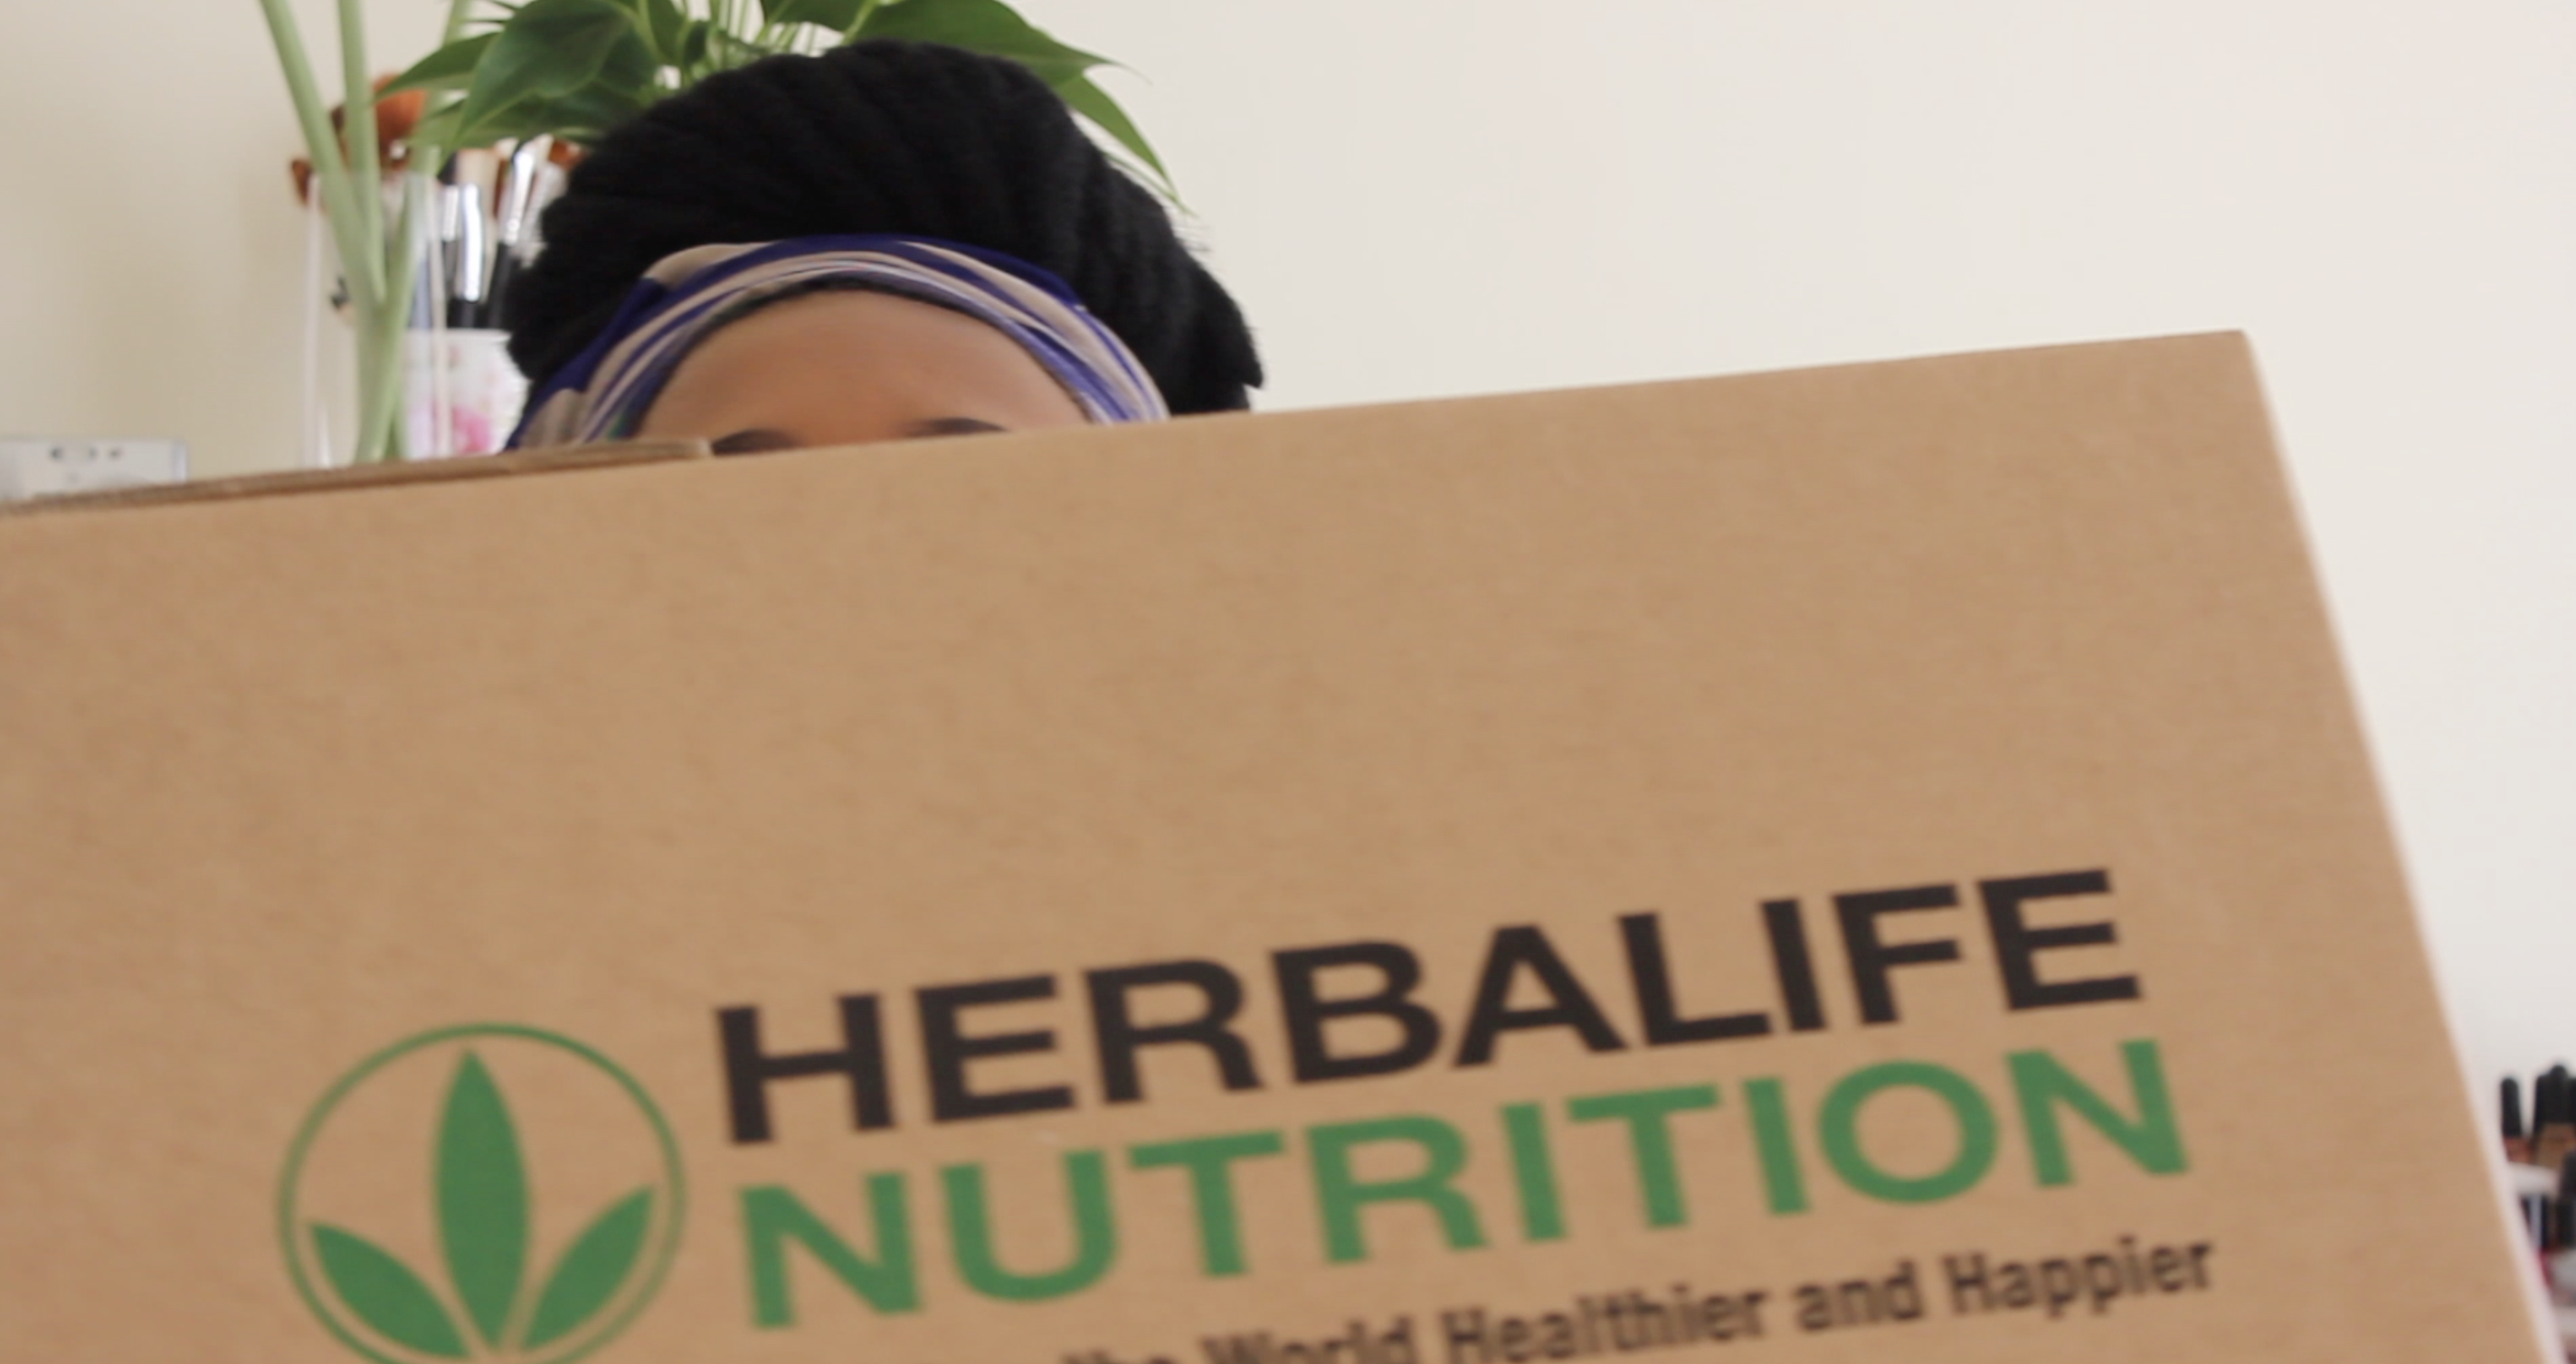 ANOTHER HERBALIFE HAUL